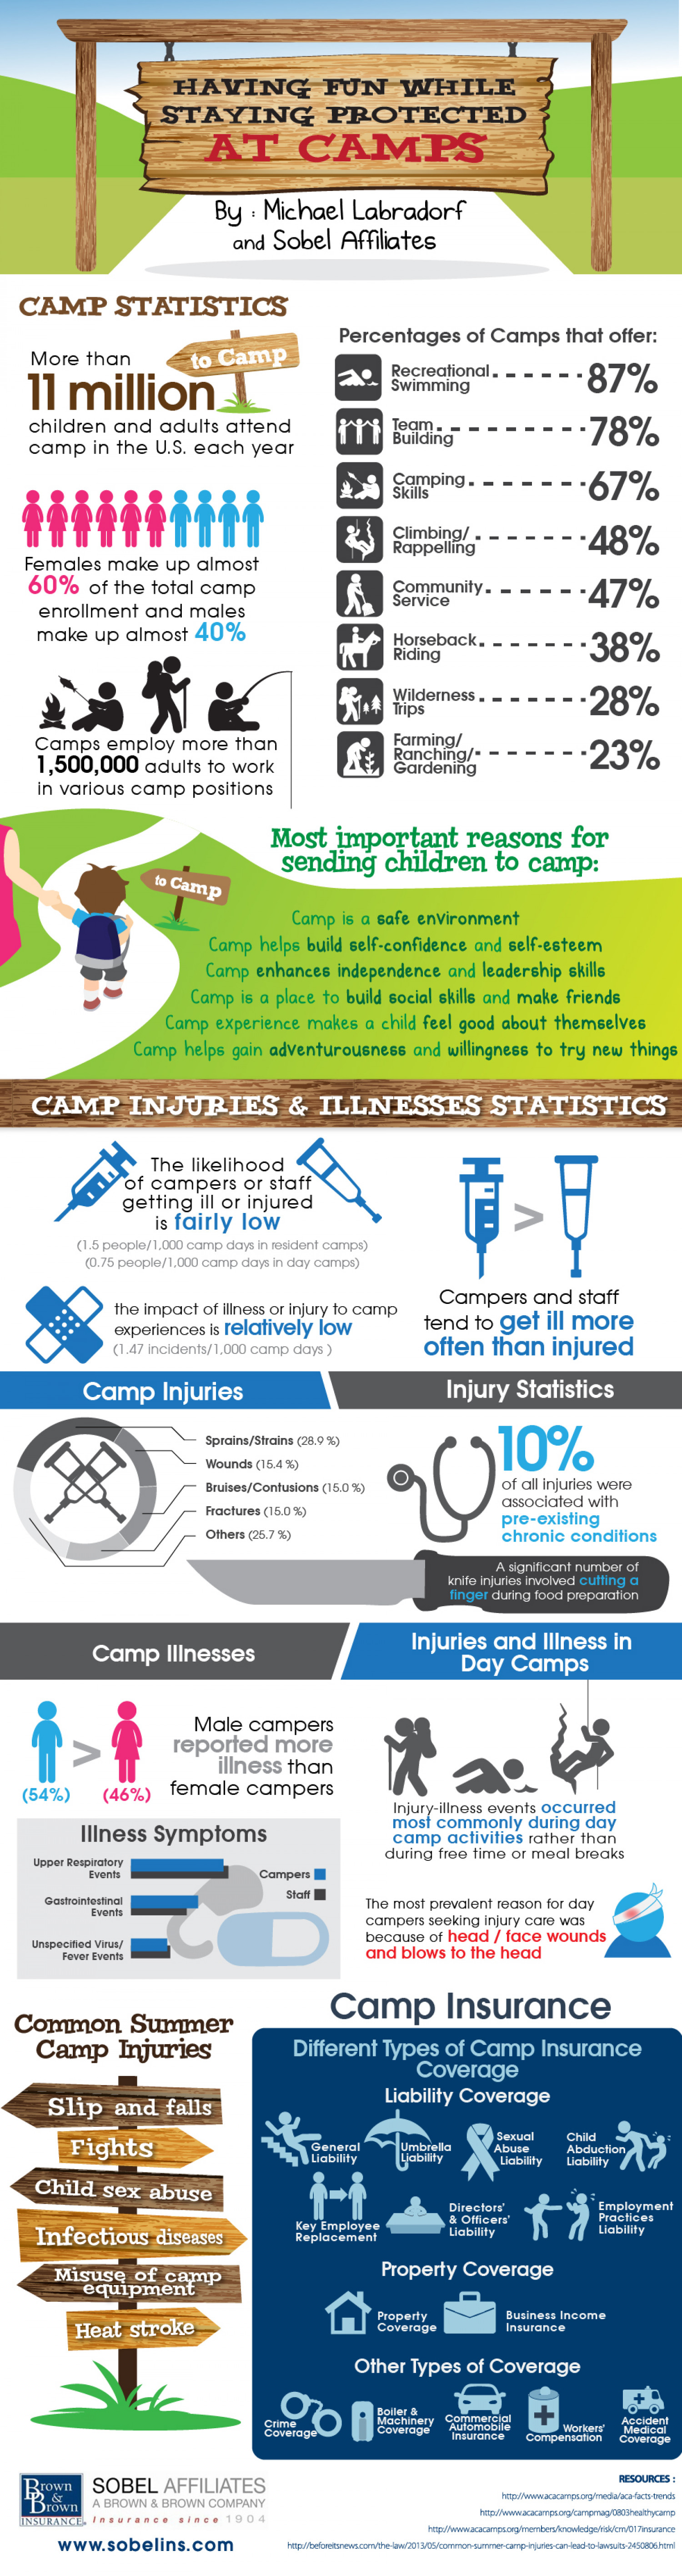 Having Fun While Staying Protected At Camps Infographic